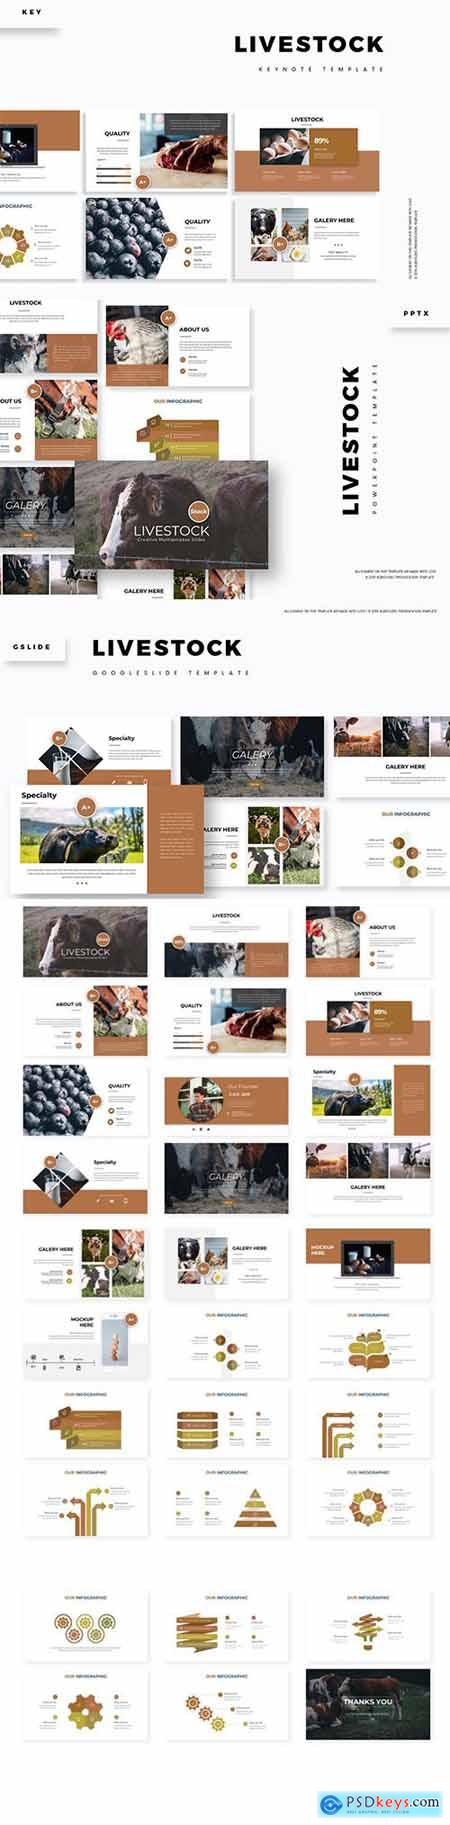 Livestock - Powerpoint, Keynote and Google Slides Templates